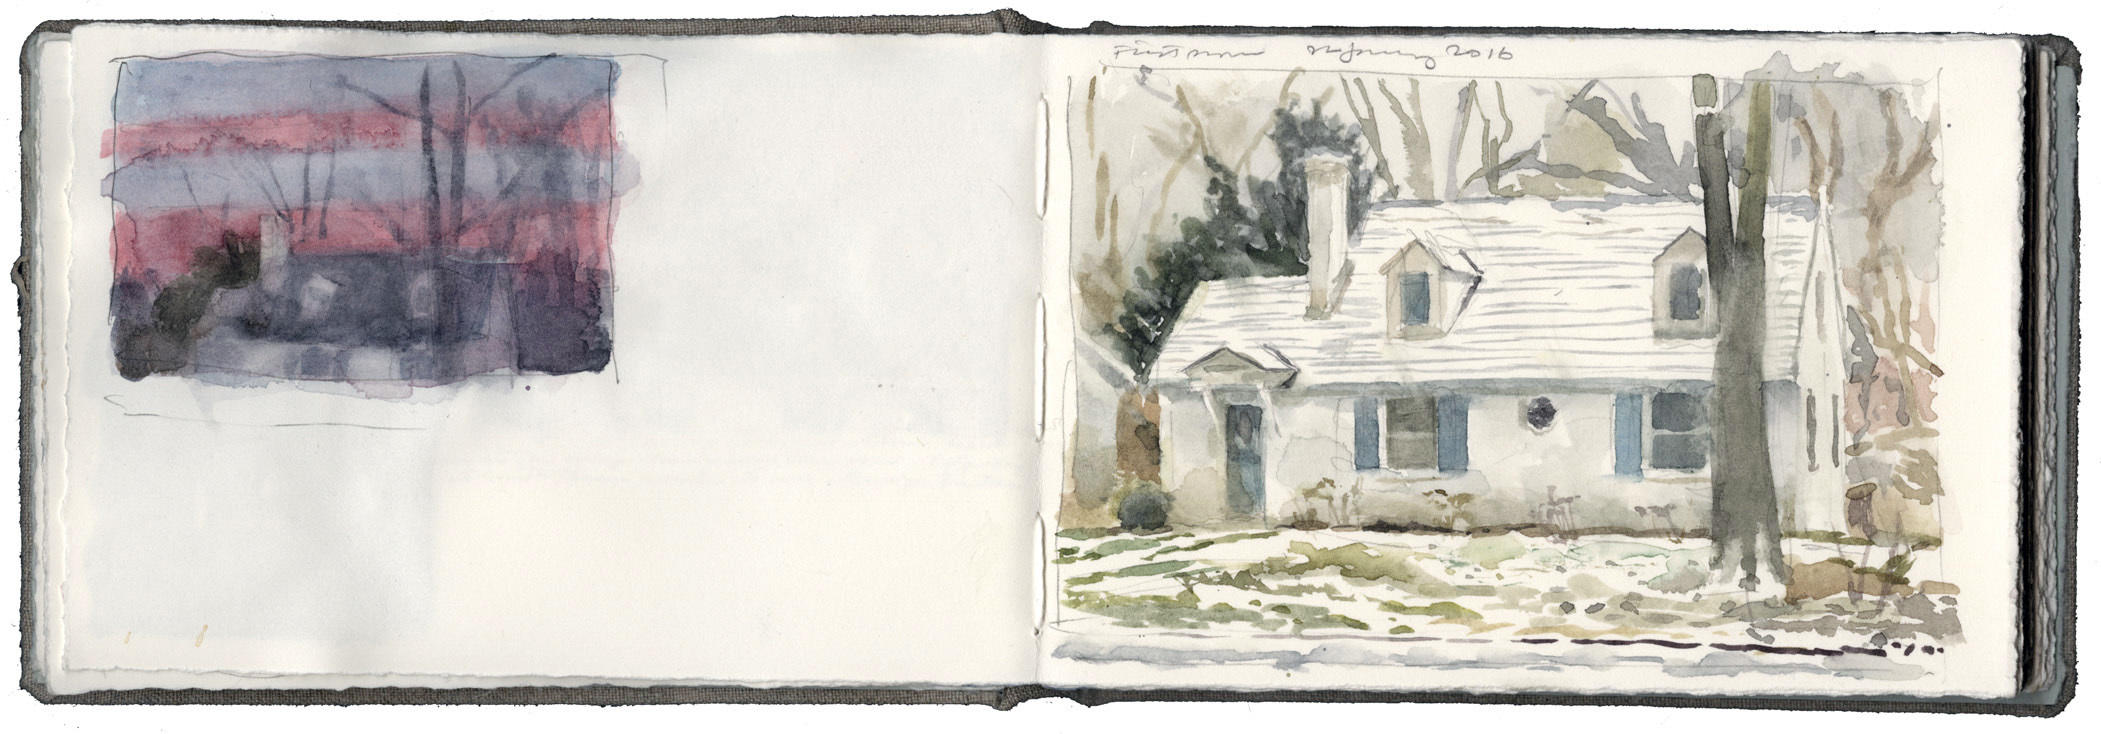 Two Studies: House at Sunrise and House with First Snow image